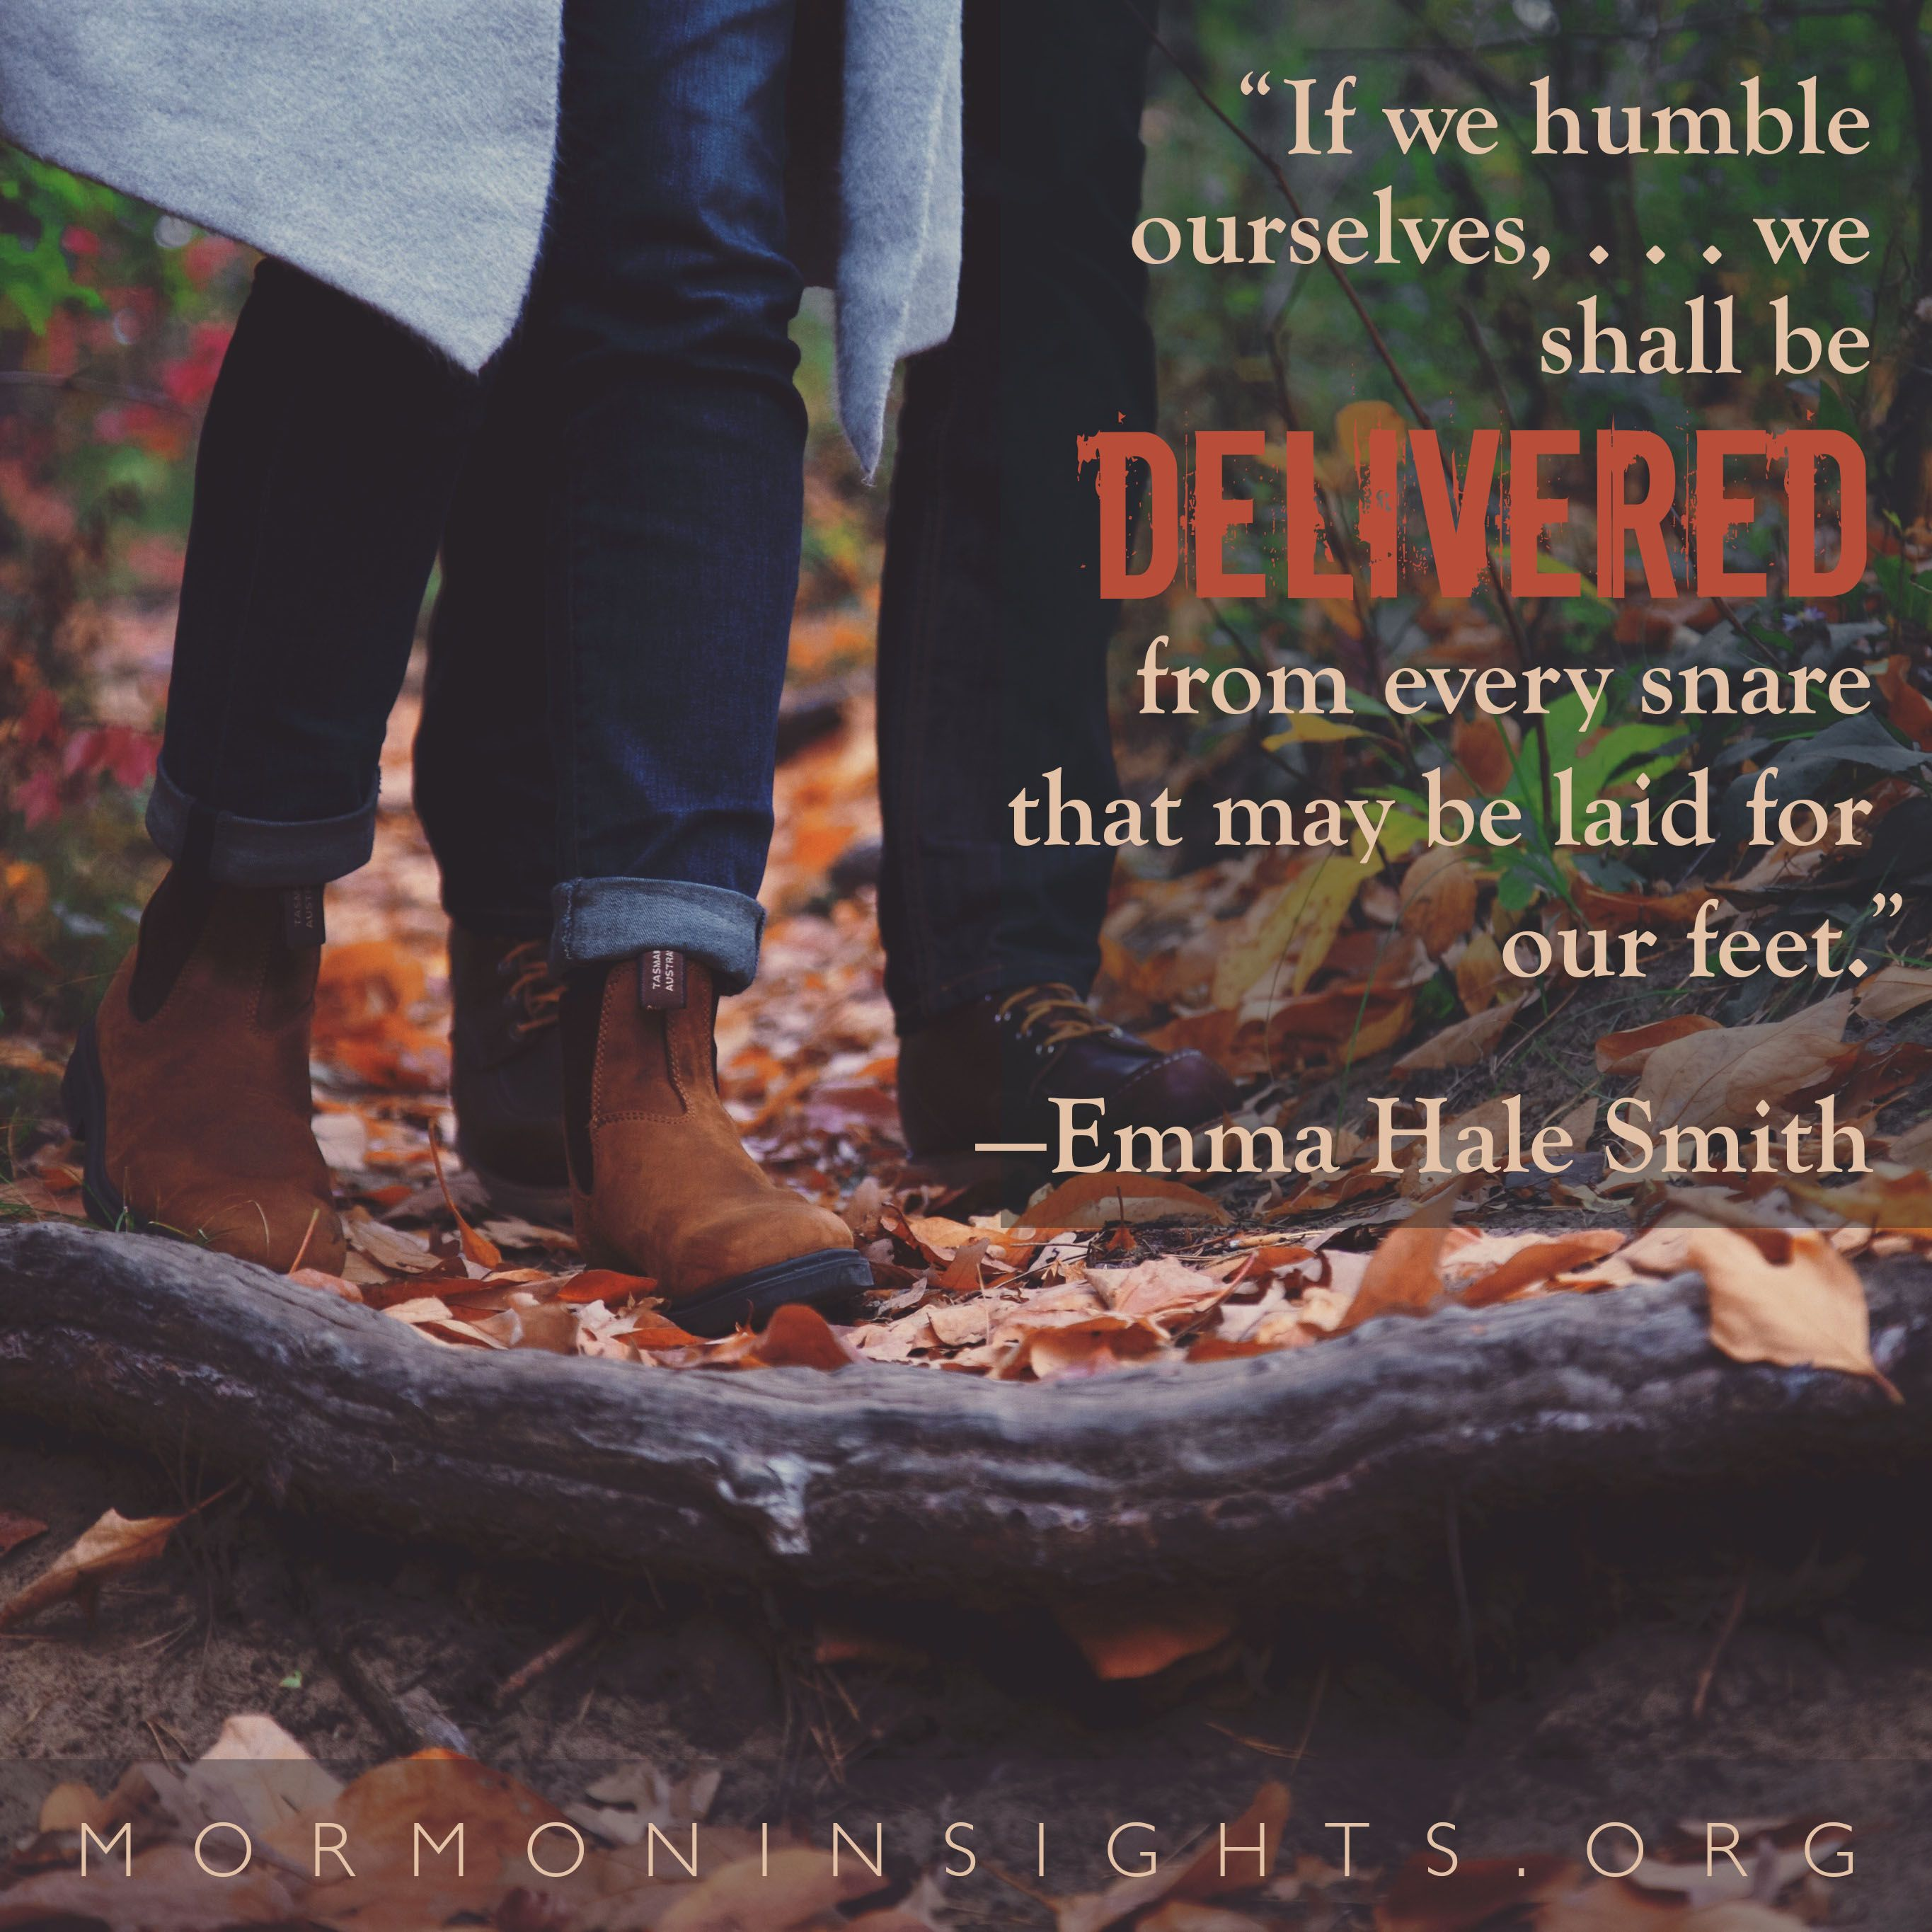 Emma's Faith: A Letter To Her Husband